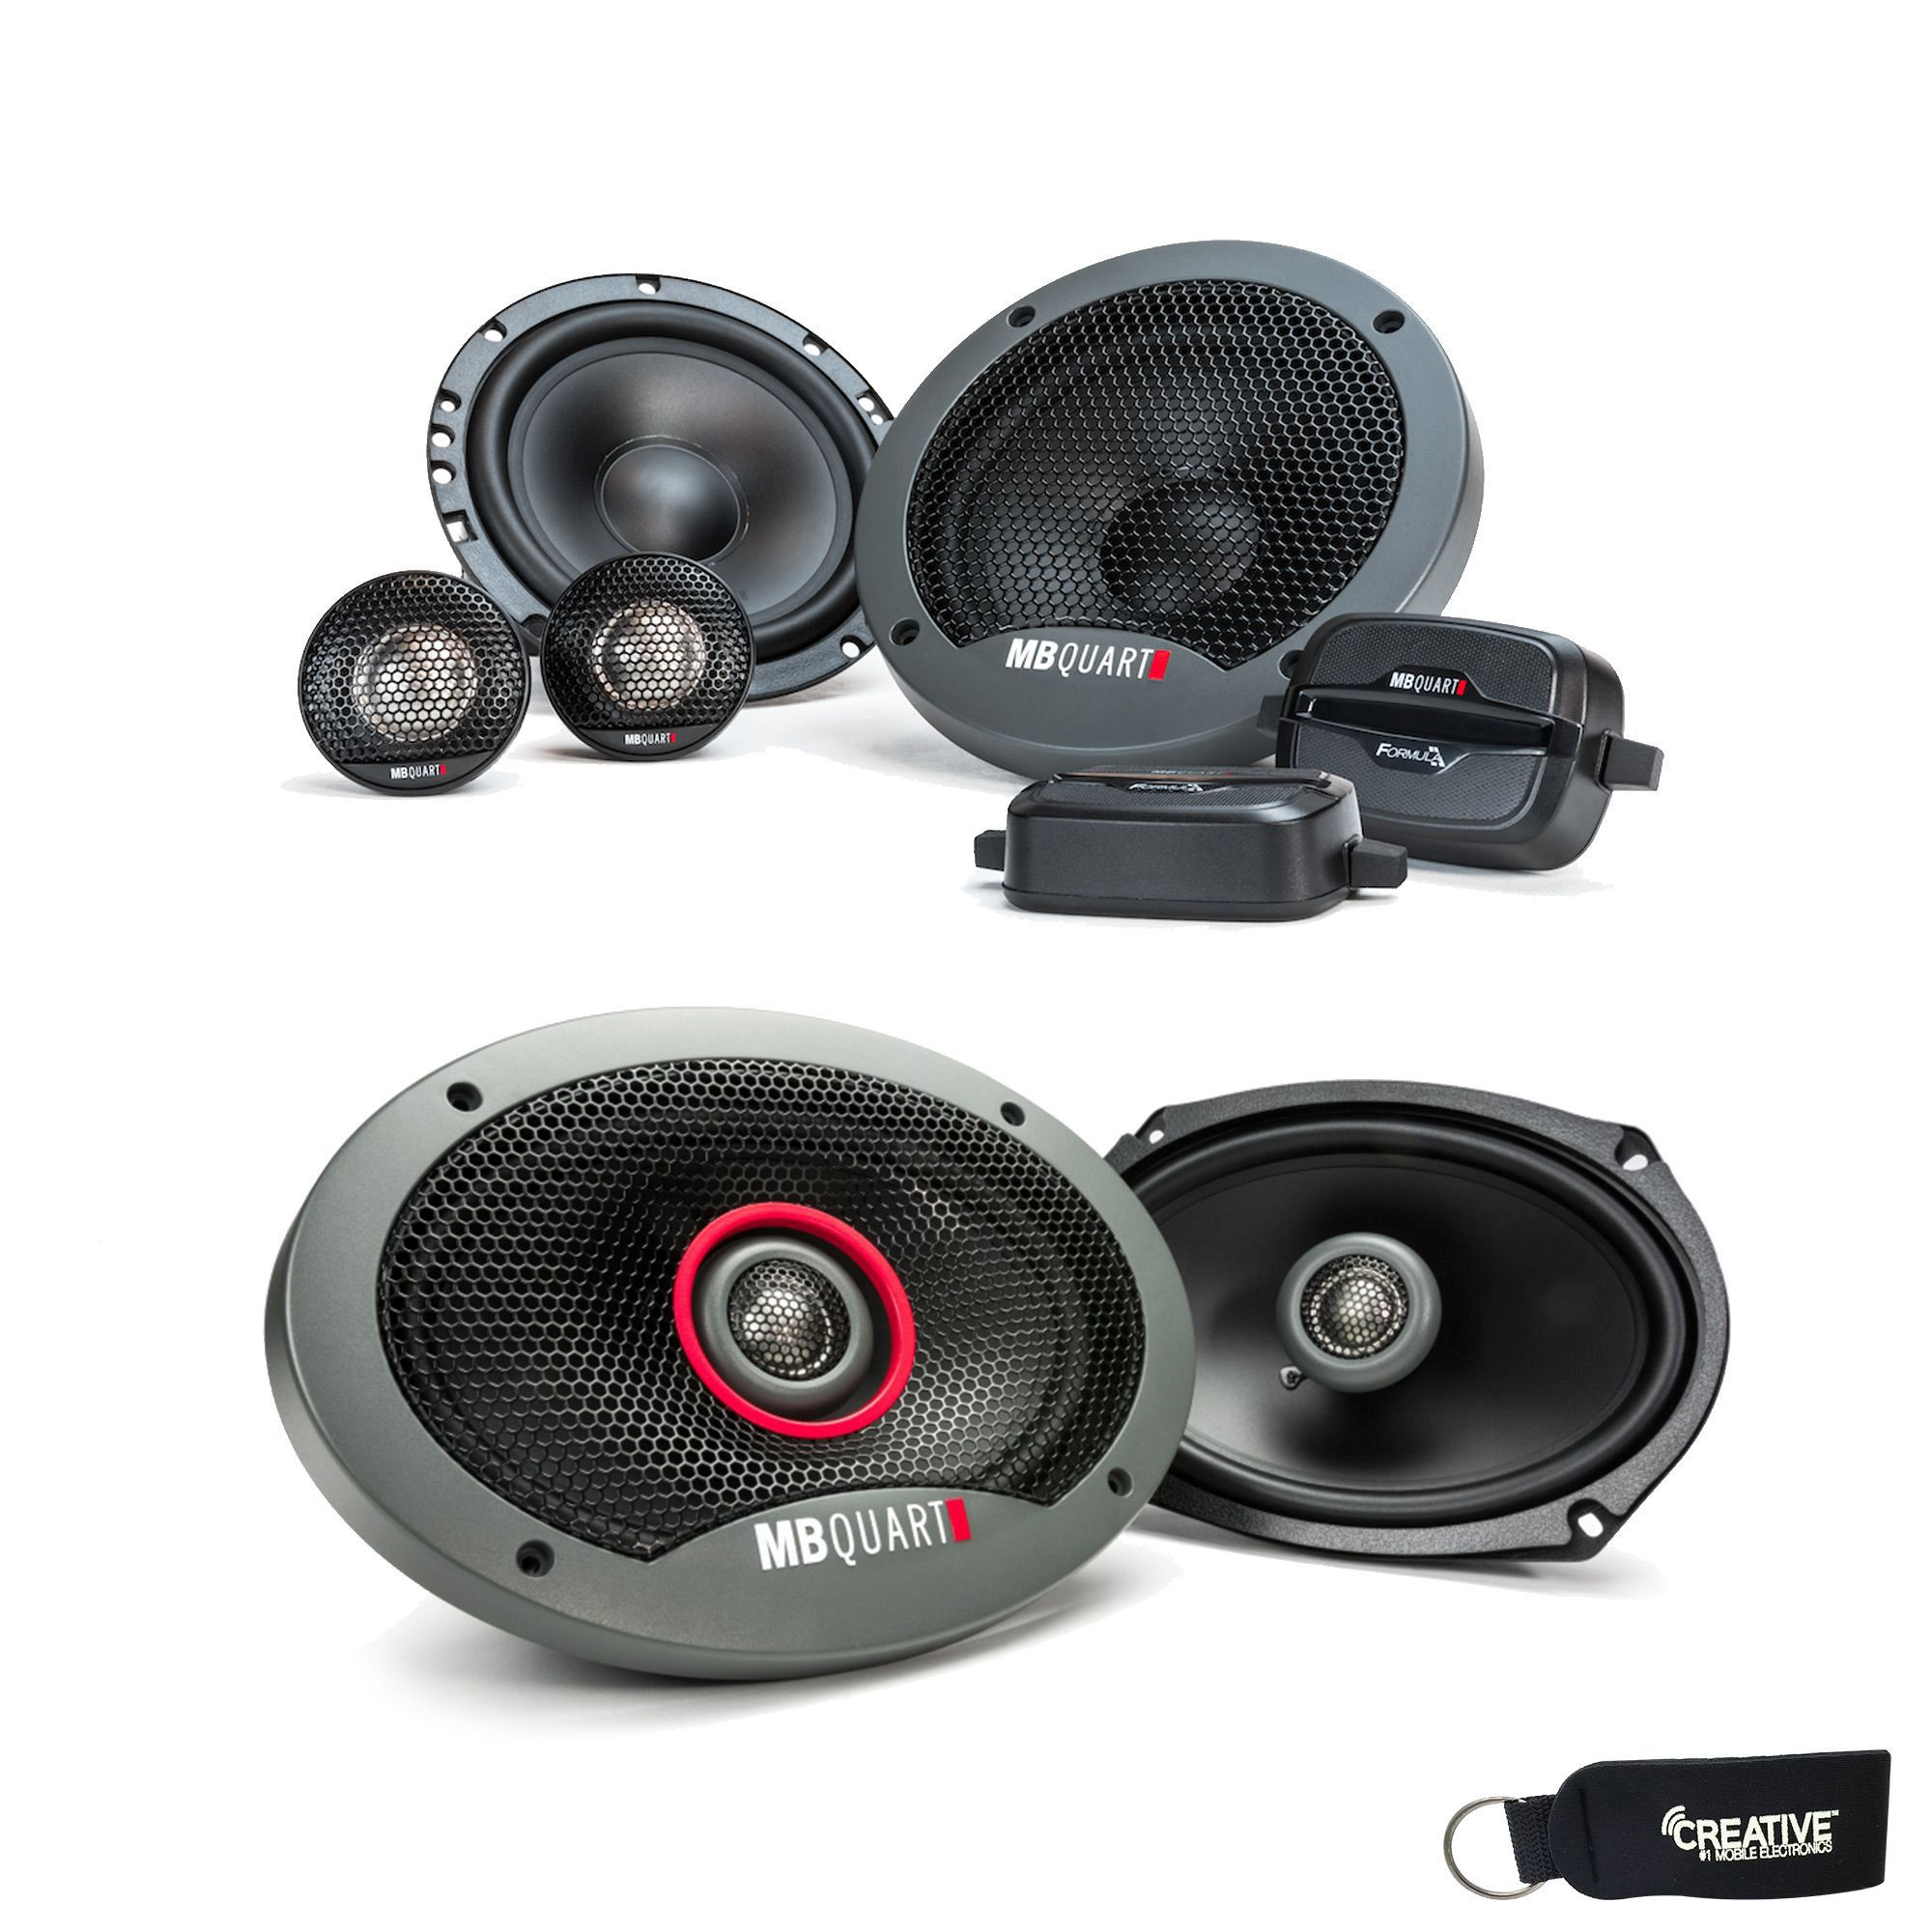 "MB Quart - Pair Of Formula FSB216 6.5"" Component Speakers And A Pair Of Formula 6x9"" Speakers FKB169"